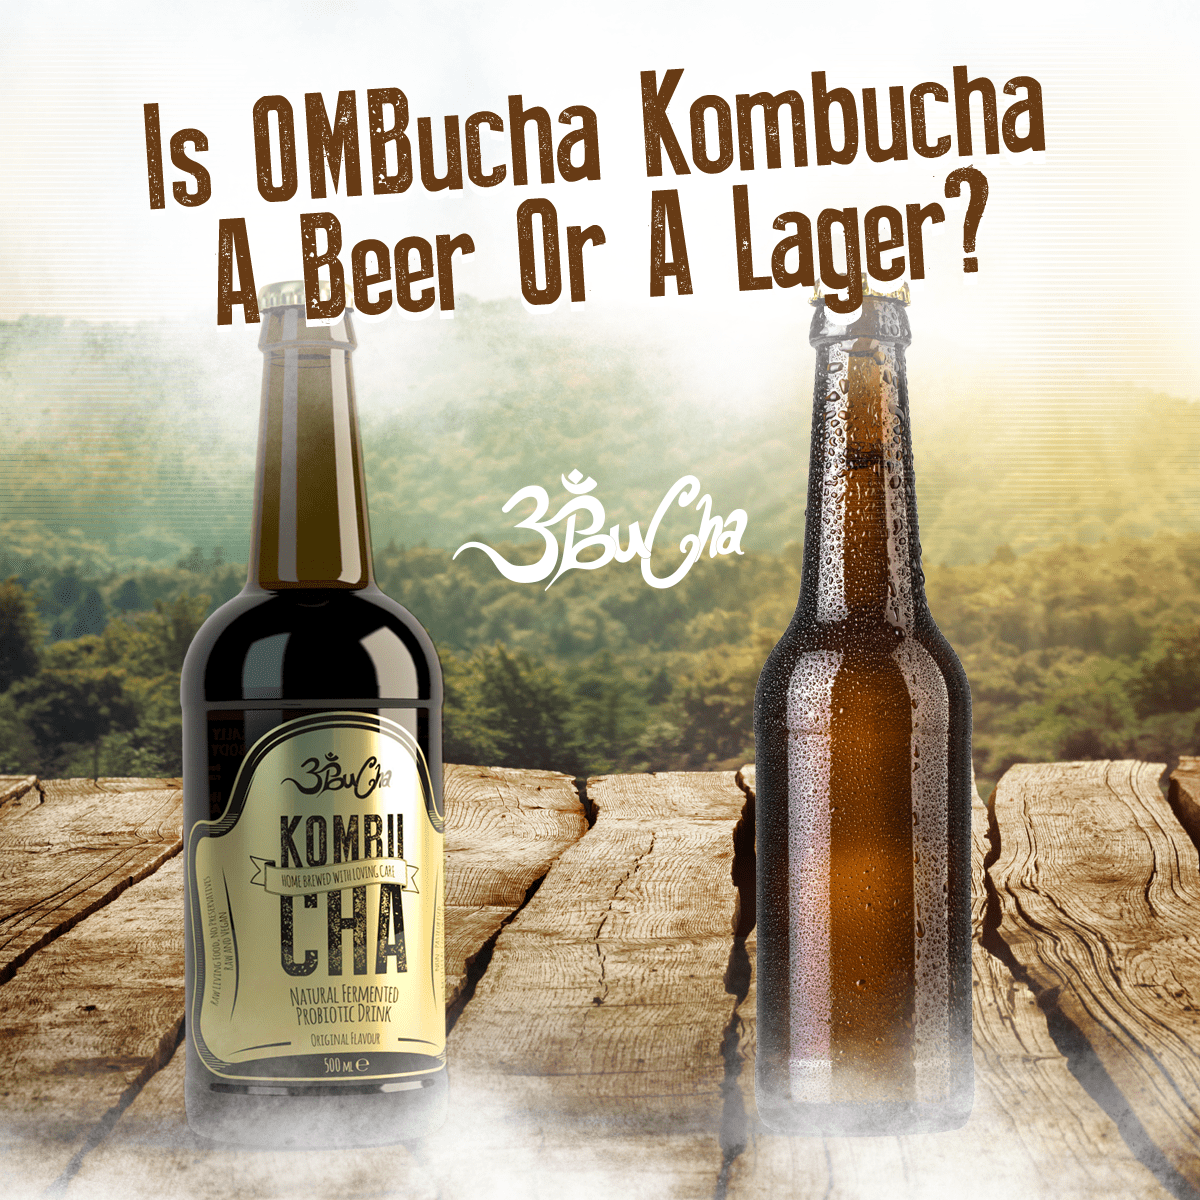 is kombucha a beer or a lager